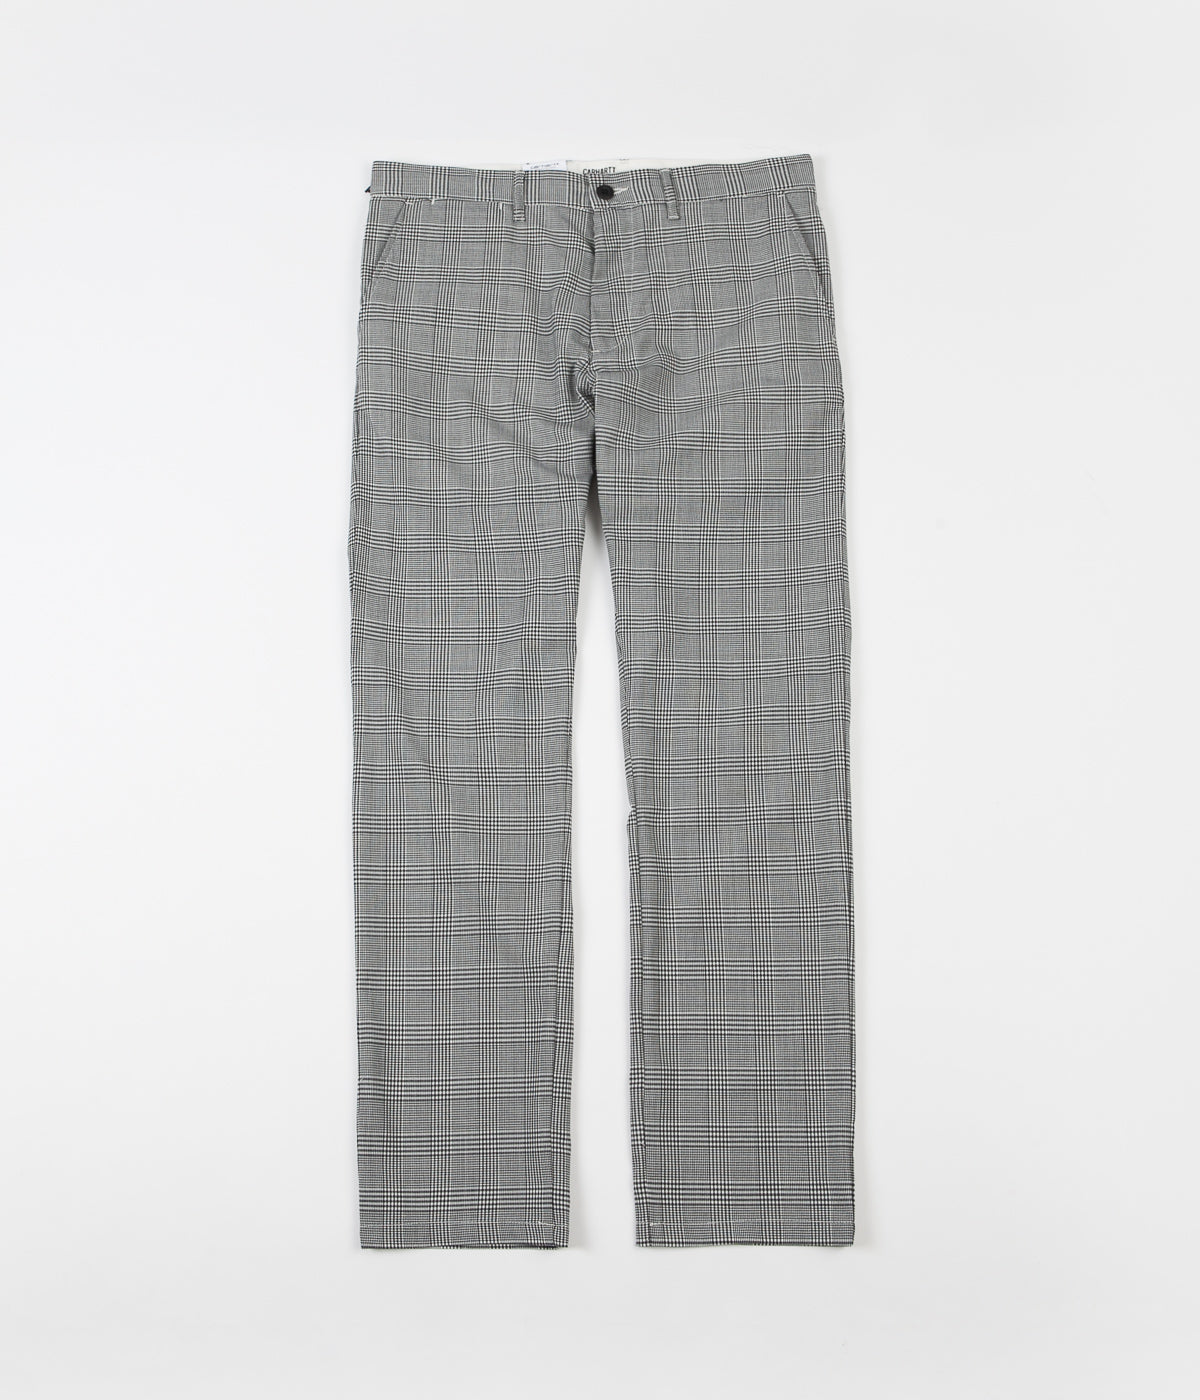 Carhartt Johnson Glencheck Pants - Black / White